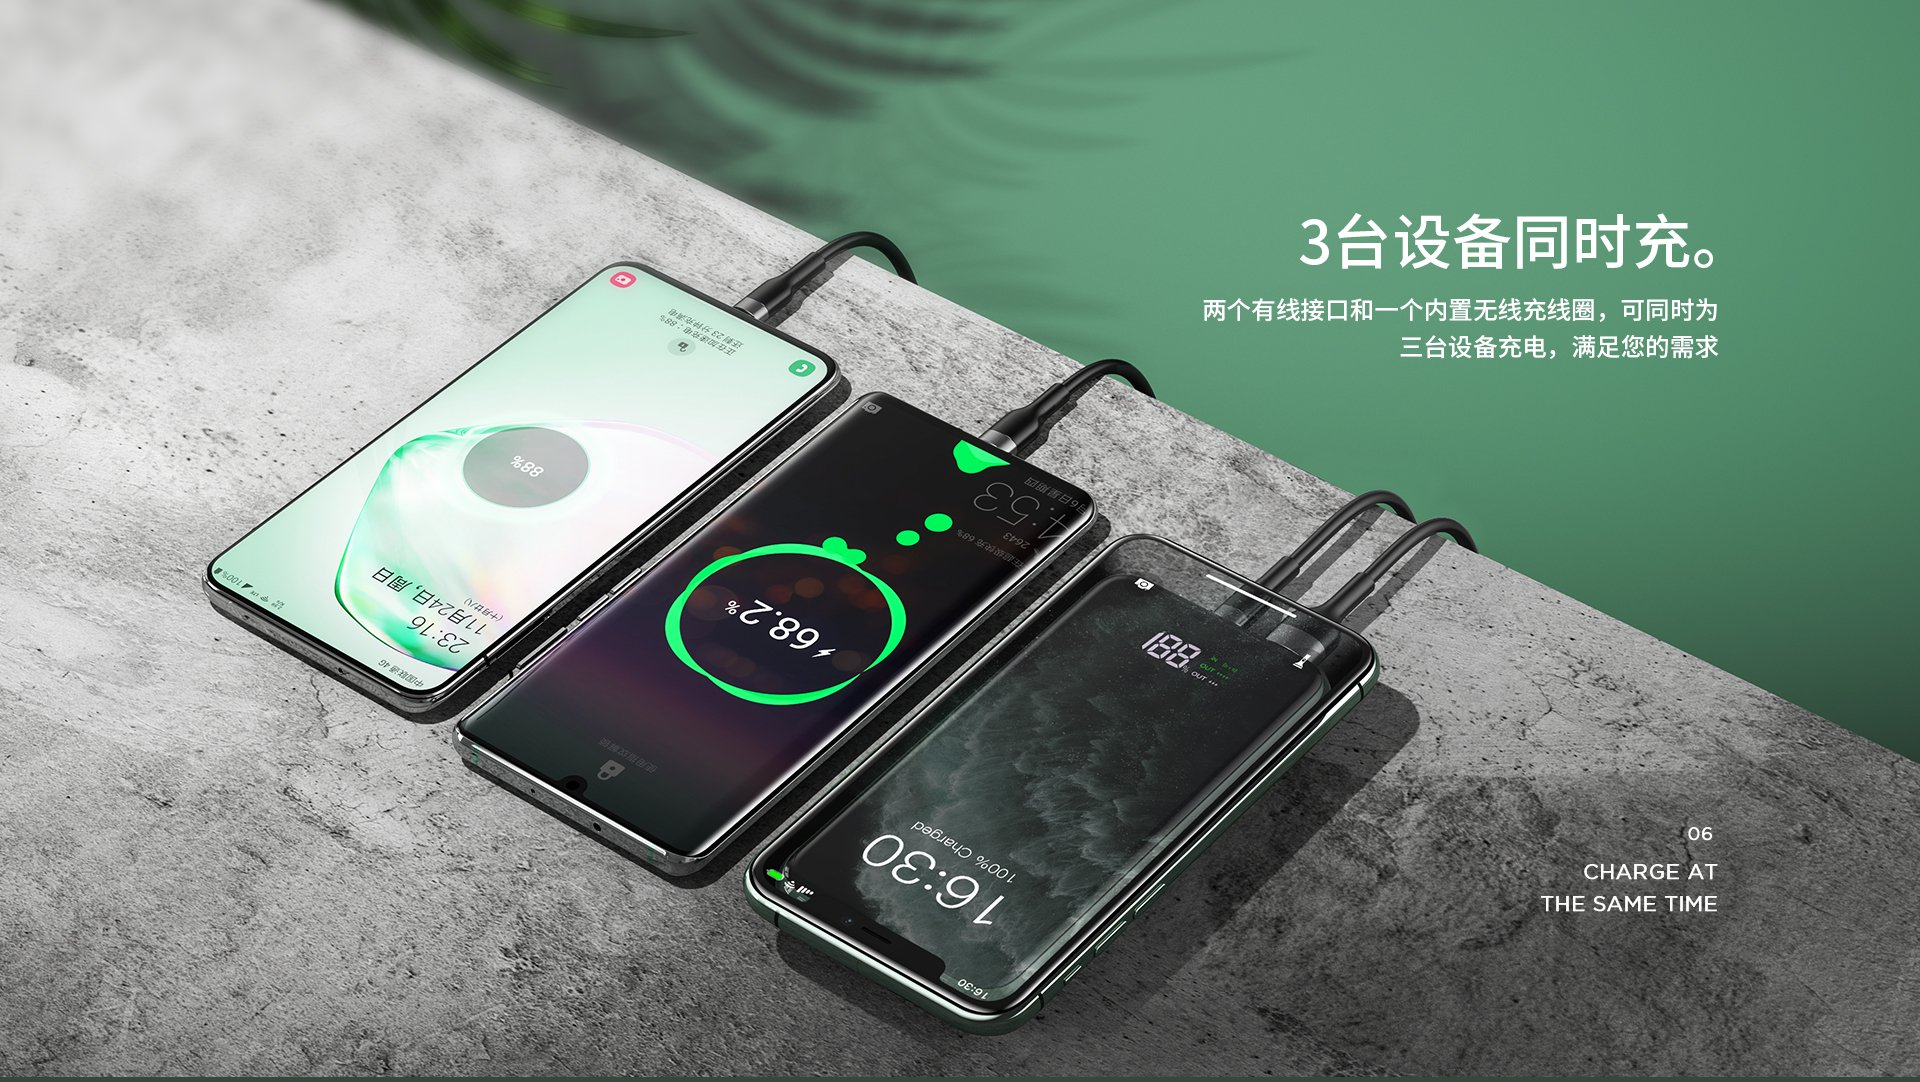 REMAX RPP 2 SINYO SERIES 18W PD QC3.0 10000MAH WIRELESS FAST CHARGE POWER BANK WITH BUILT IN PHONE HOLDER 2